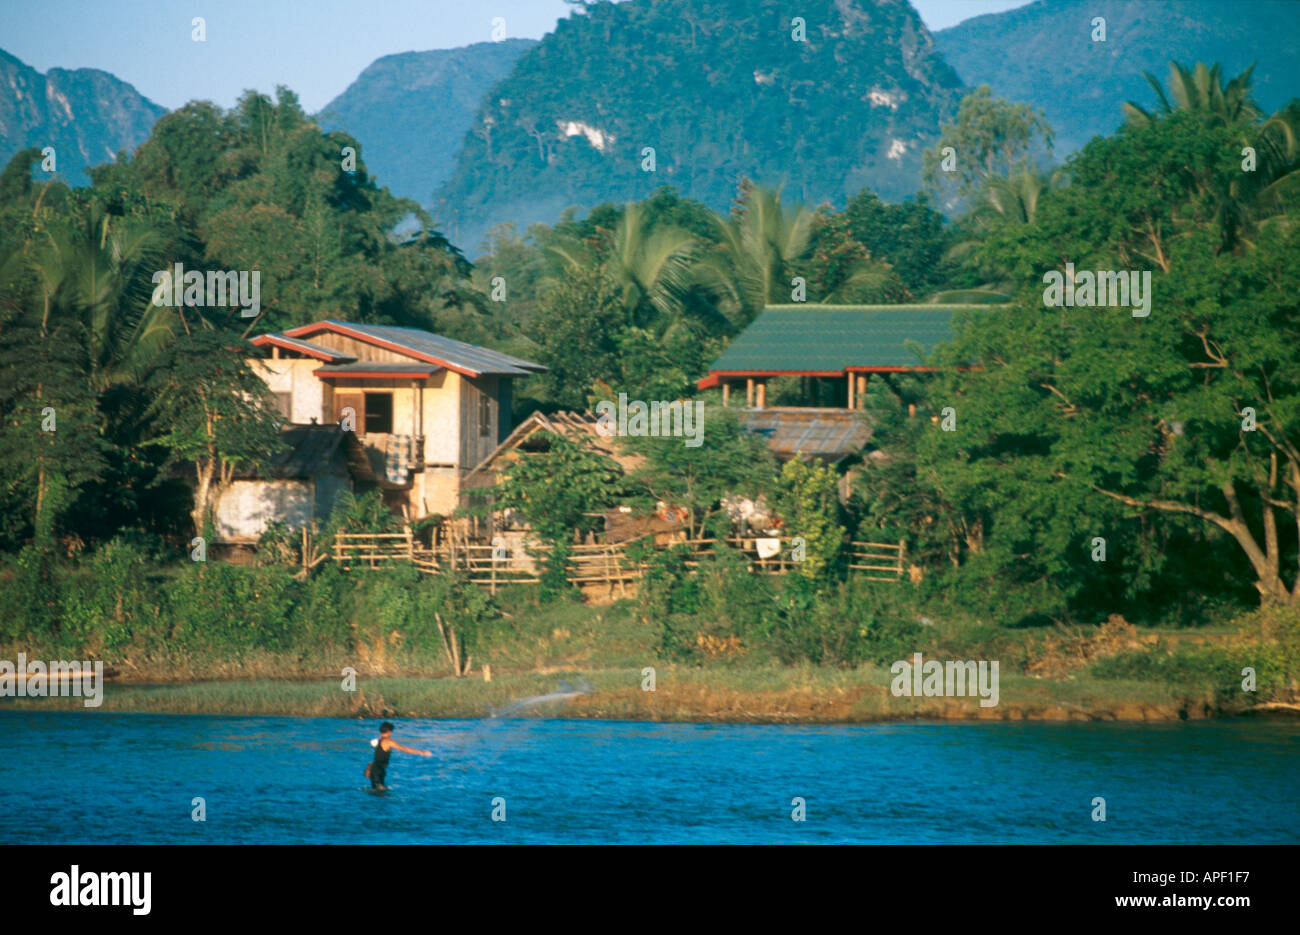 Fishing with nets on the Mekong River Vang Vieng Laos Stock Photo